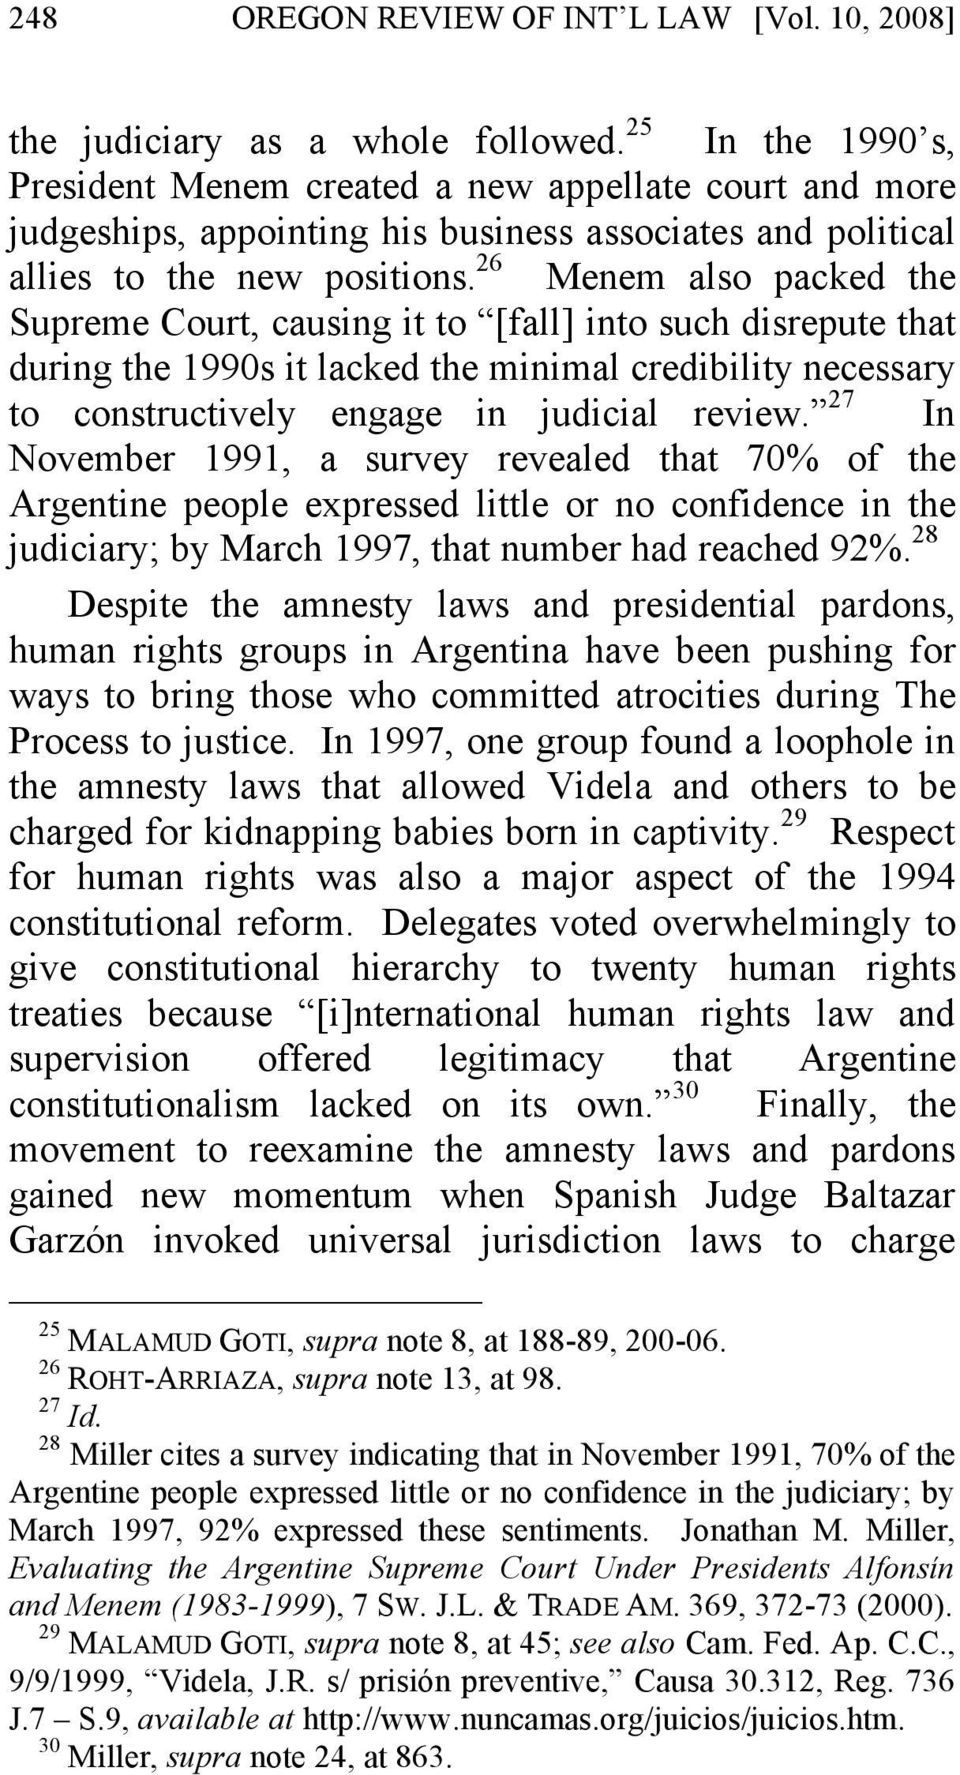 26 Menem also packed the Supreme Court, causing it to [fall] into such disrepute that during the 1990s it lacked the minimal credibility necessary to constructively engage in judicial review.